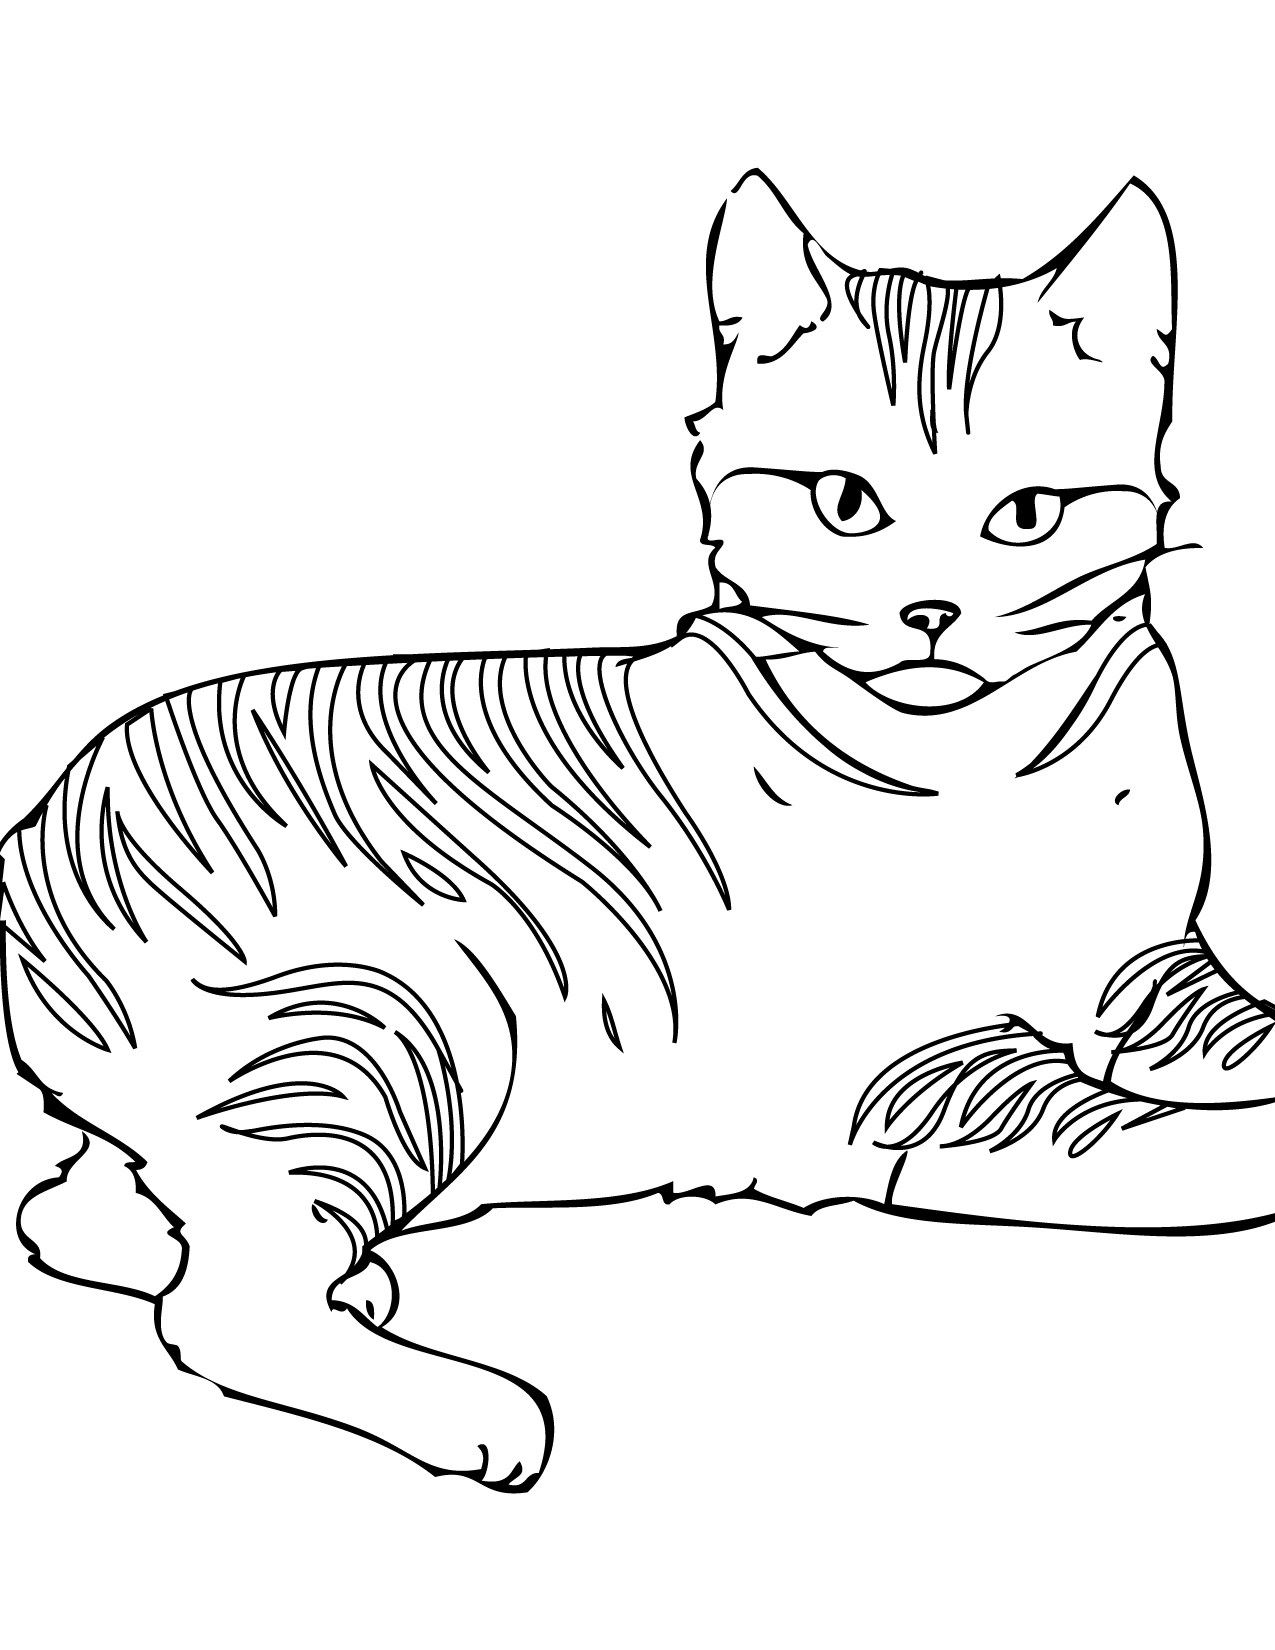 free cats coloring pages Free Printable Cat Coloring Pages For Kids free cats coloring pages